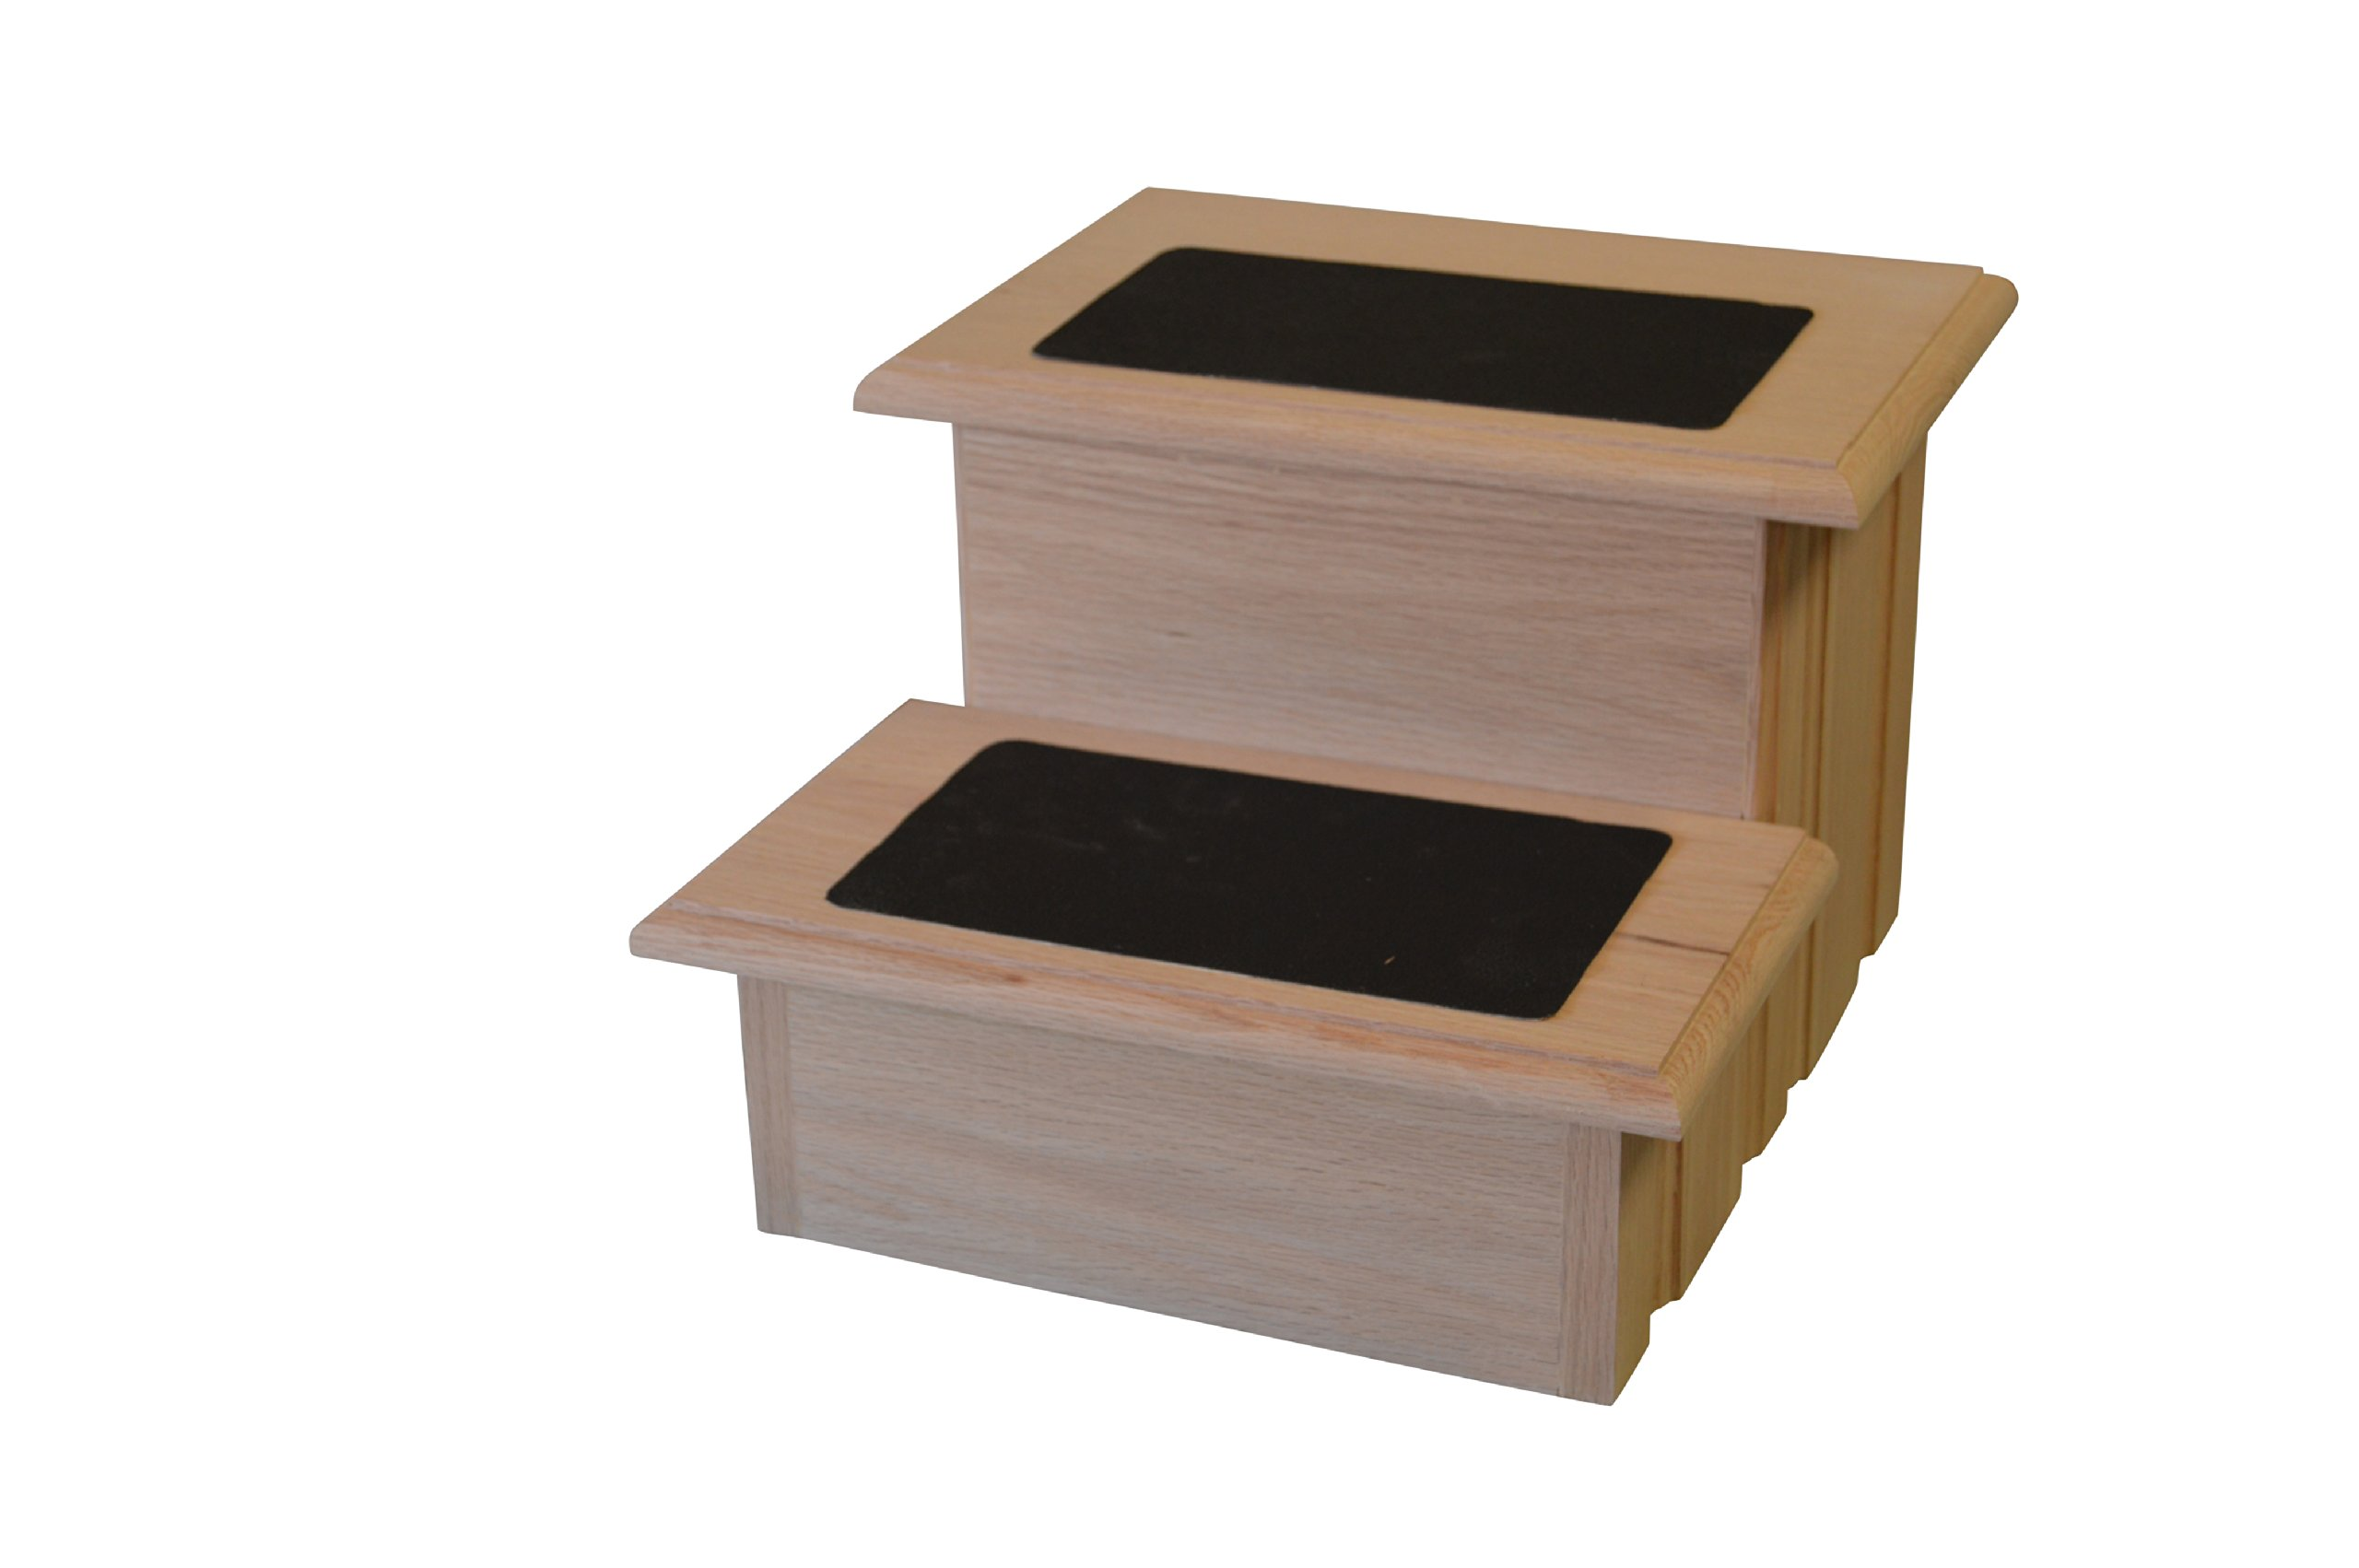 Unfinished Solid Oak Step Stool With Solid Tread with Non Slip Surface Included 11 ½'' Tall